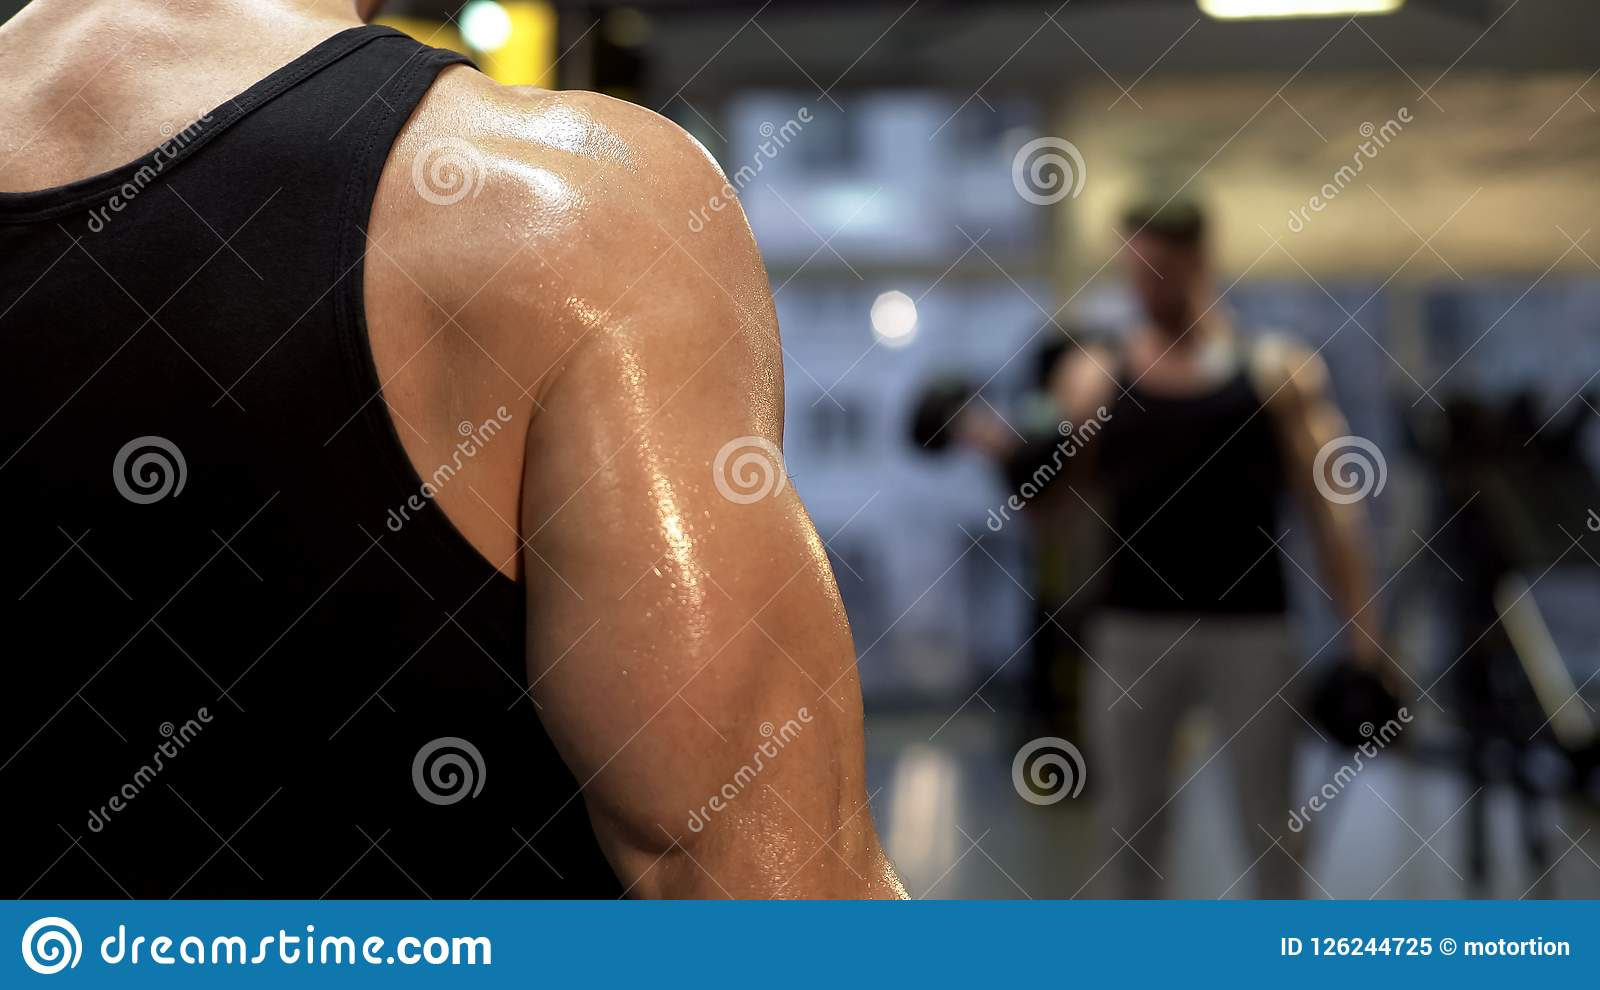 Sweaty sportsman pumping arm muscles, holding dumbbells in hands close up, goal